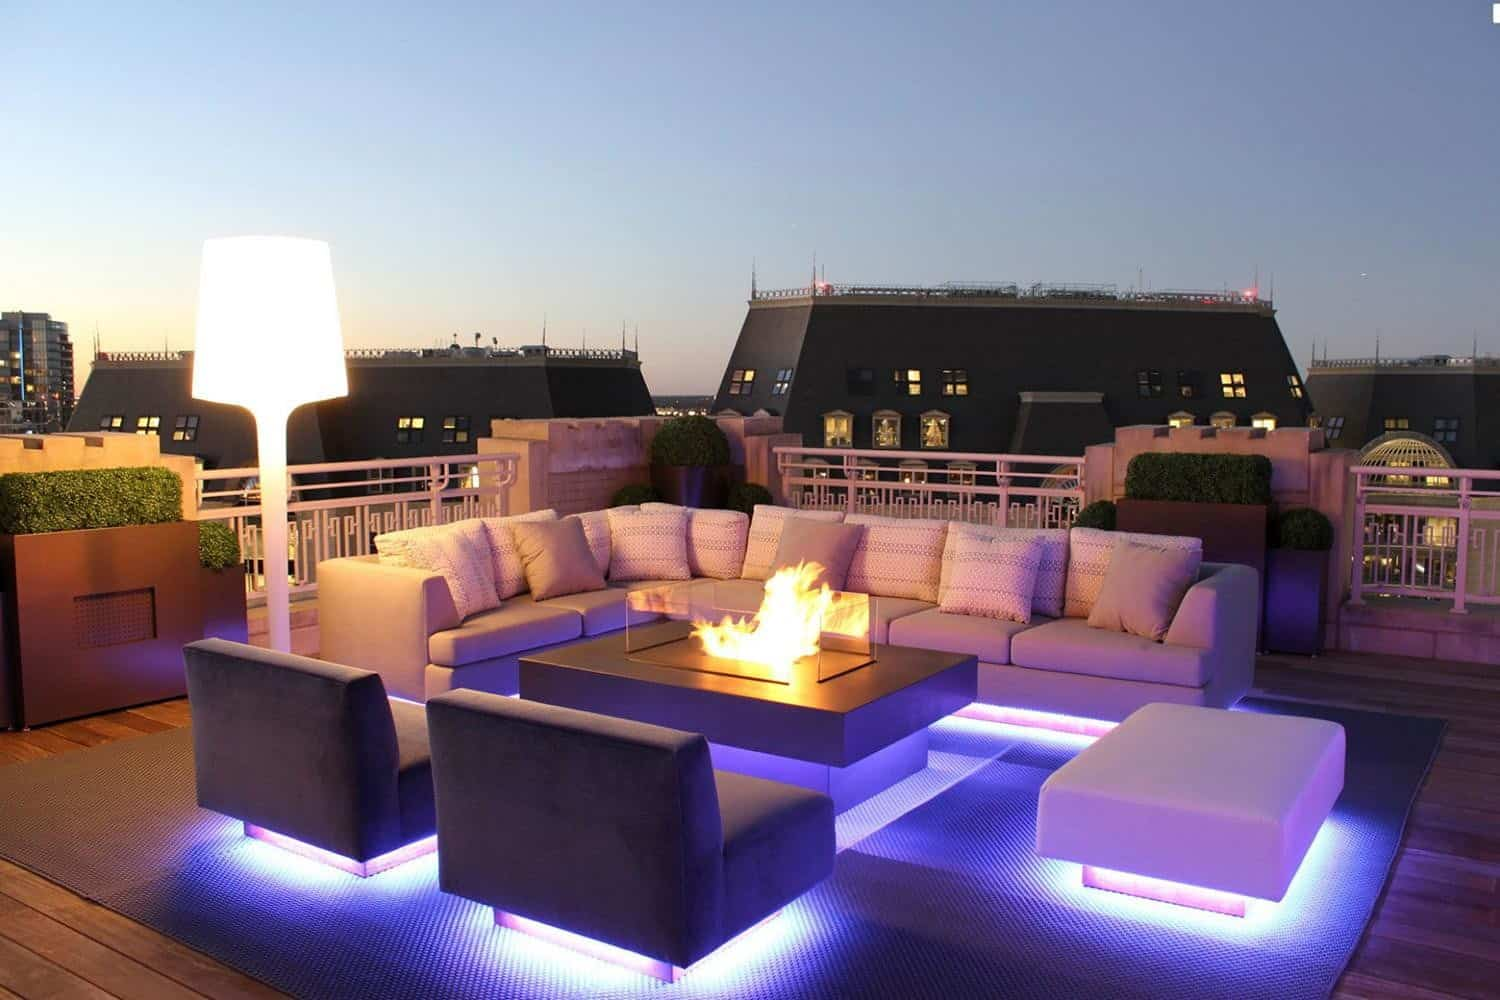 Strip lights are great when you want to add lighting to your deck without changing your decor